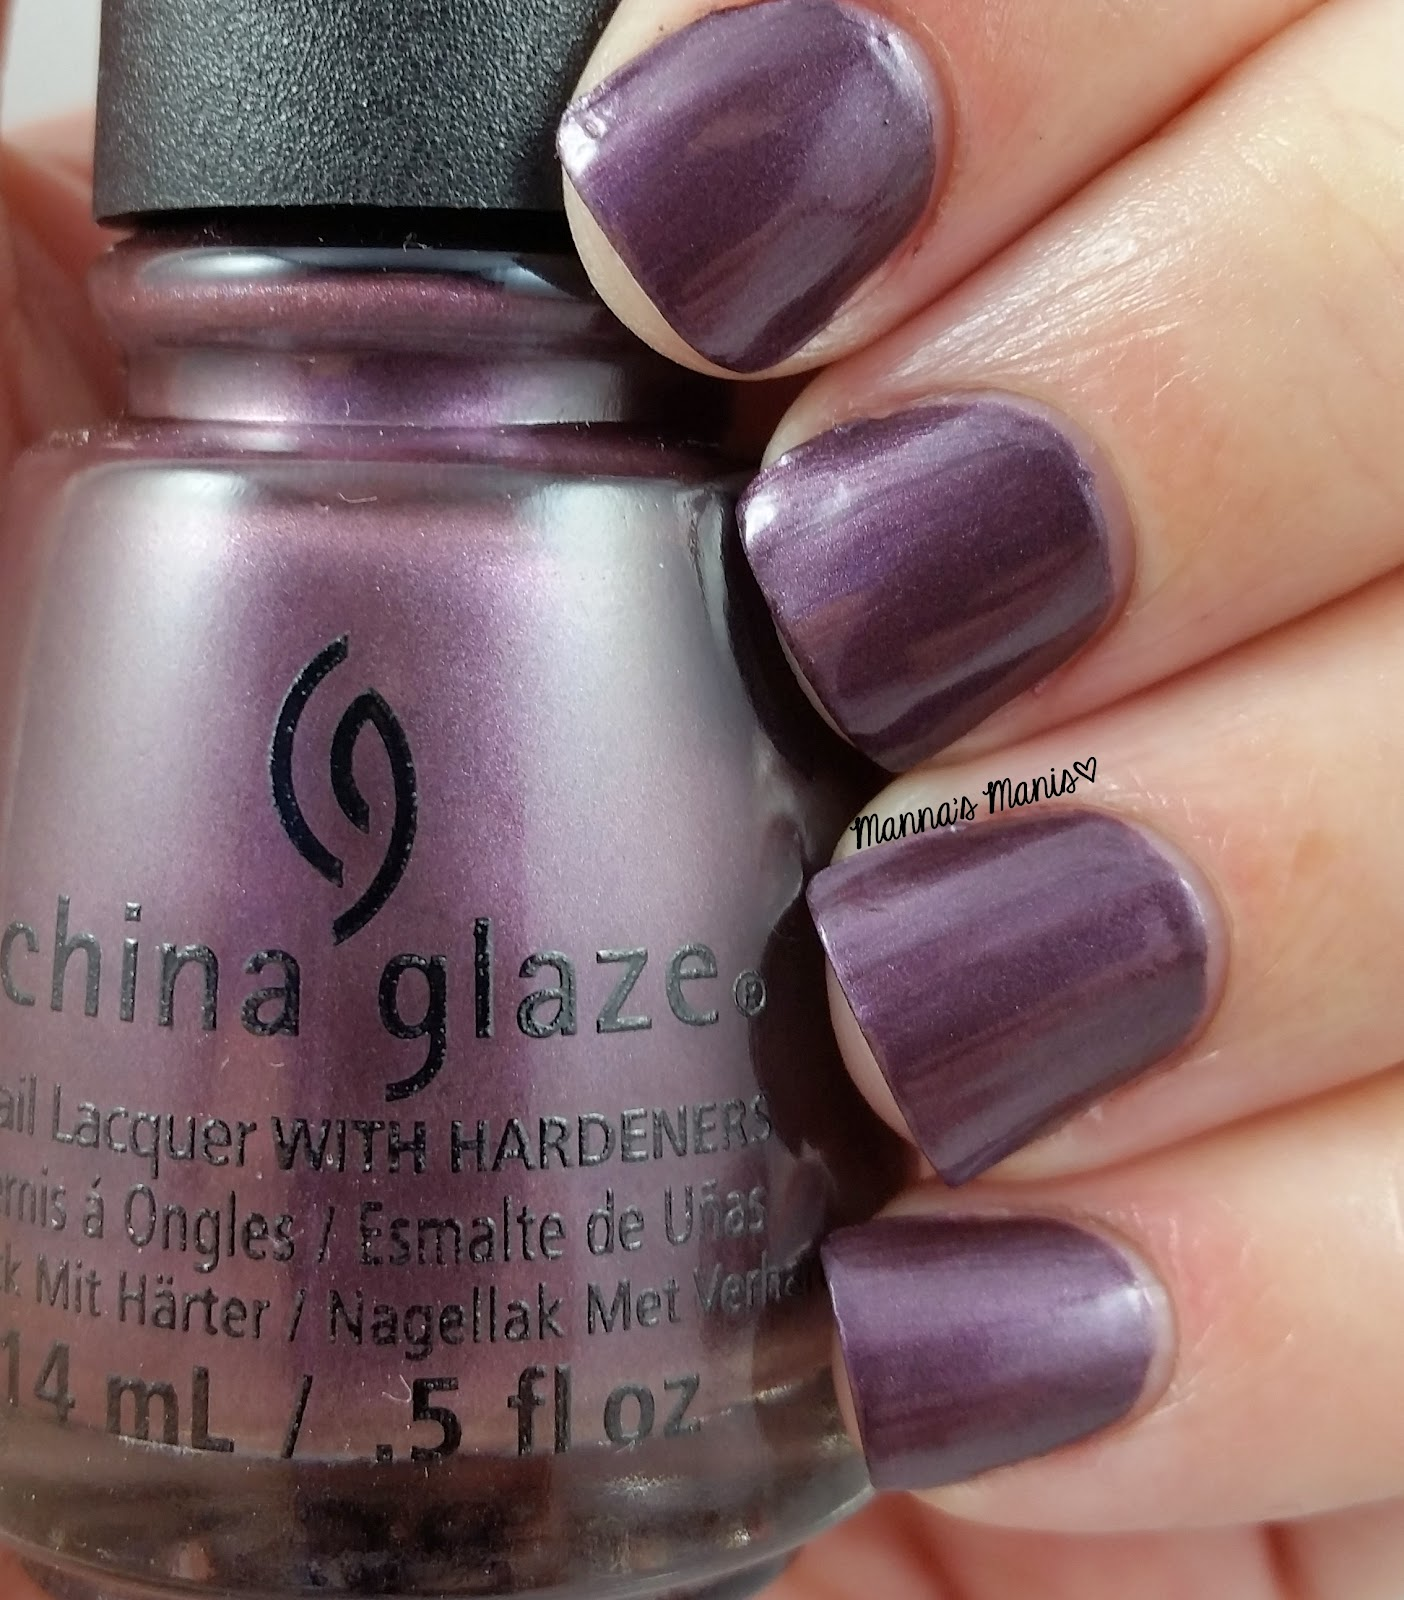 china glaze no peeking, a purple shimmer nail polish